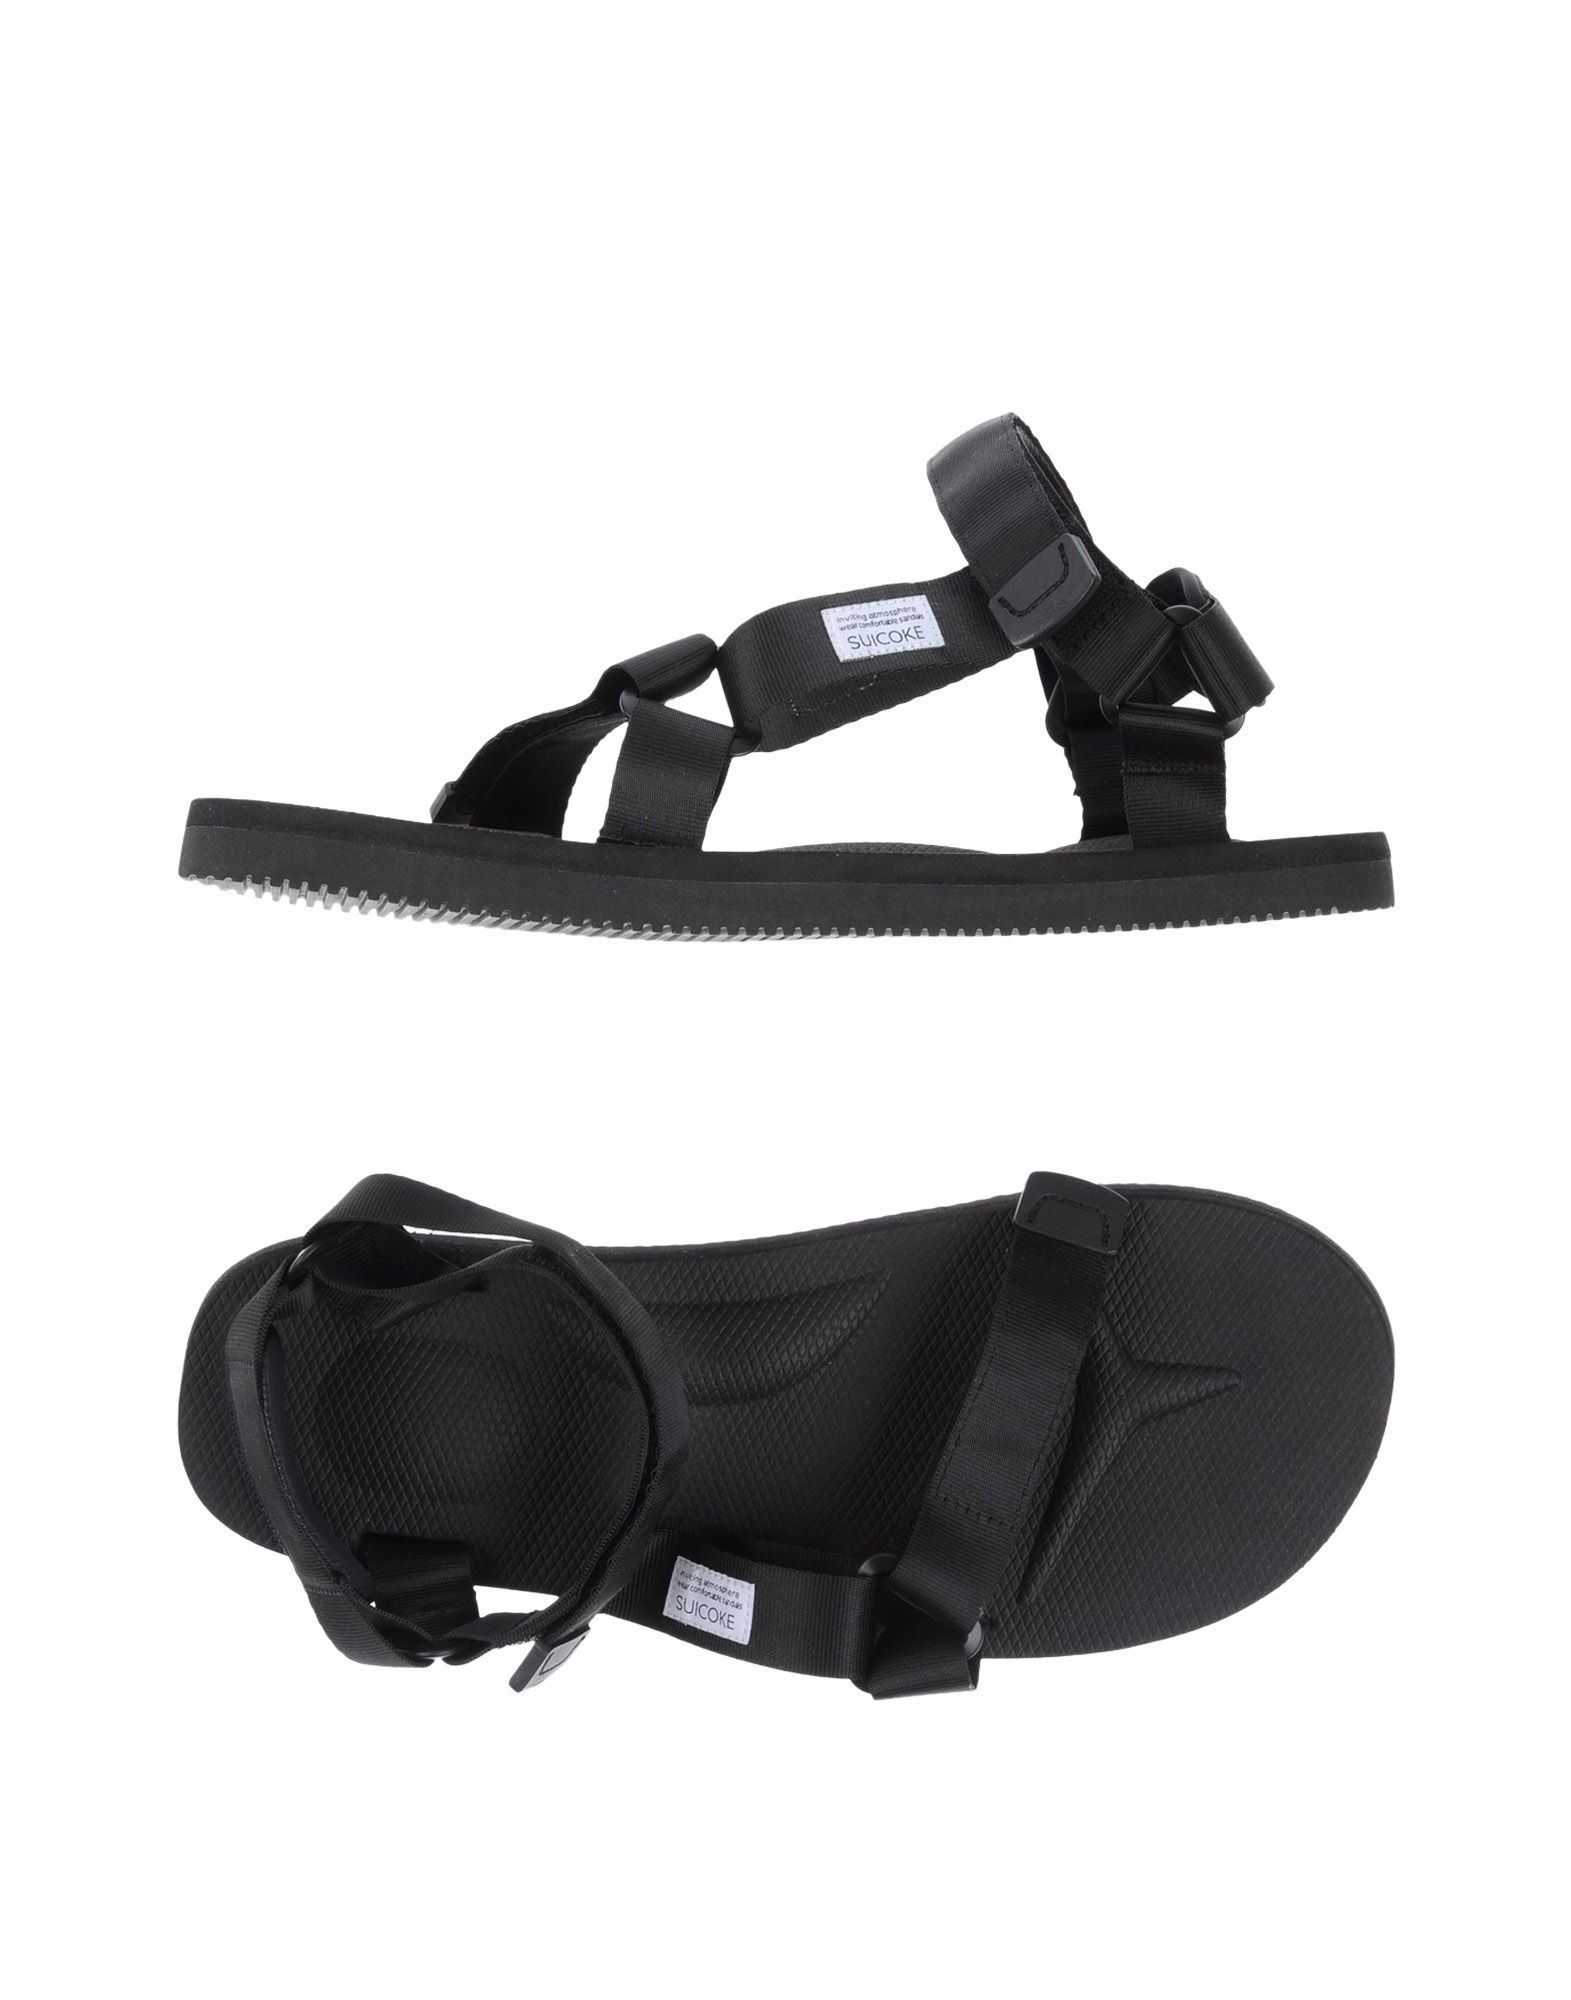 4db878be2 Suicoke Men Sandals on YOOX. The best online selection of Sandals Suicoke.